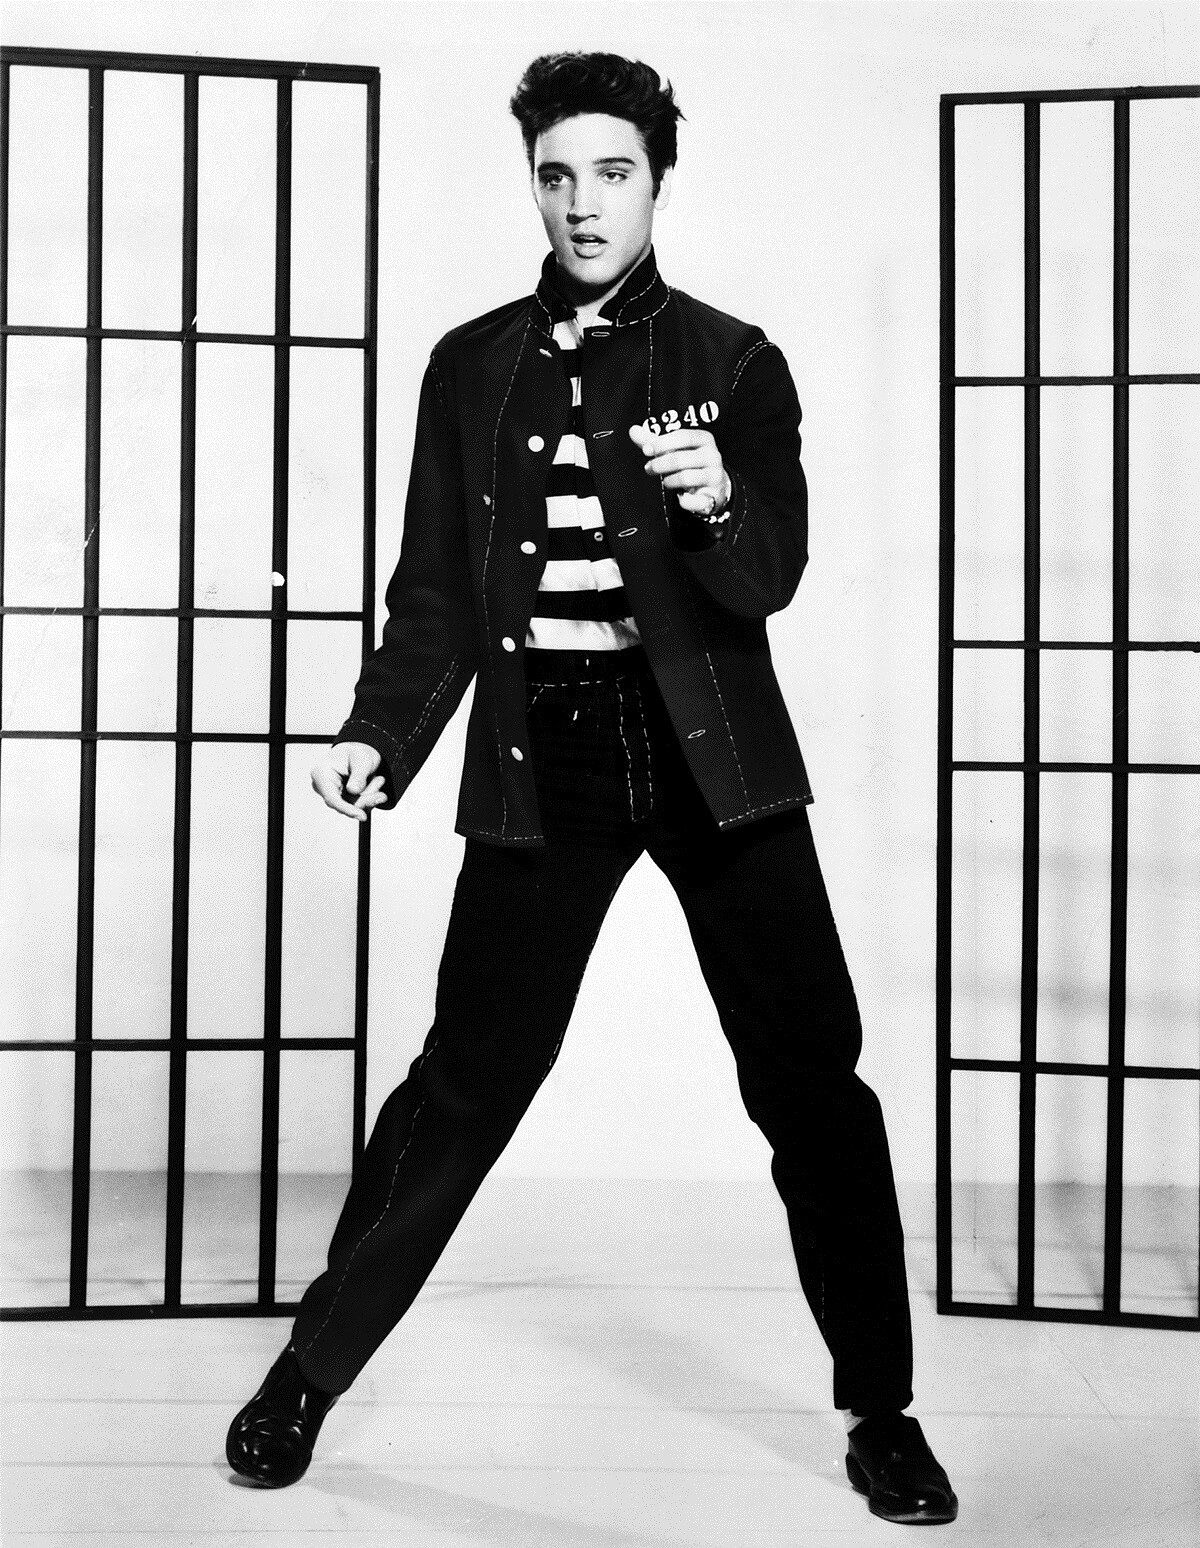 what was elvis presley's middle name?